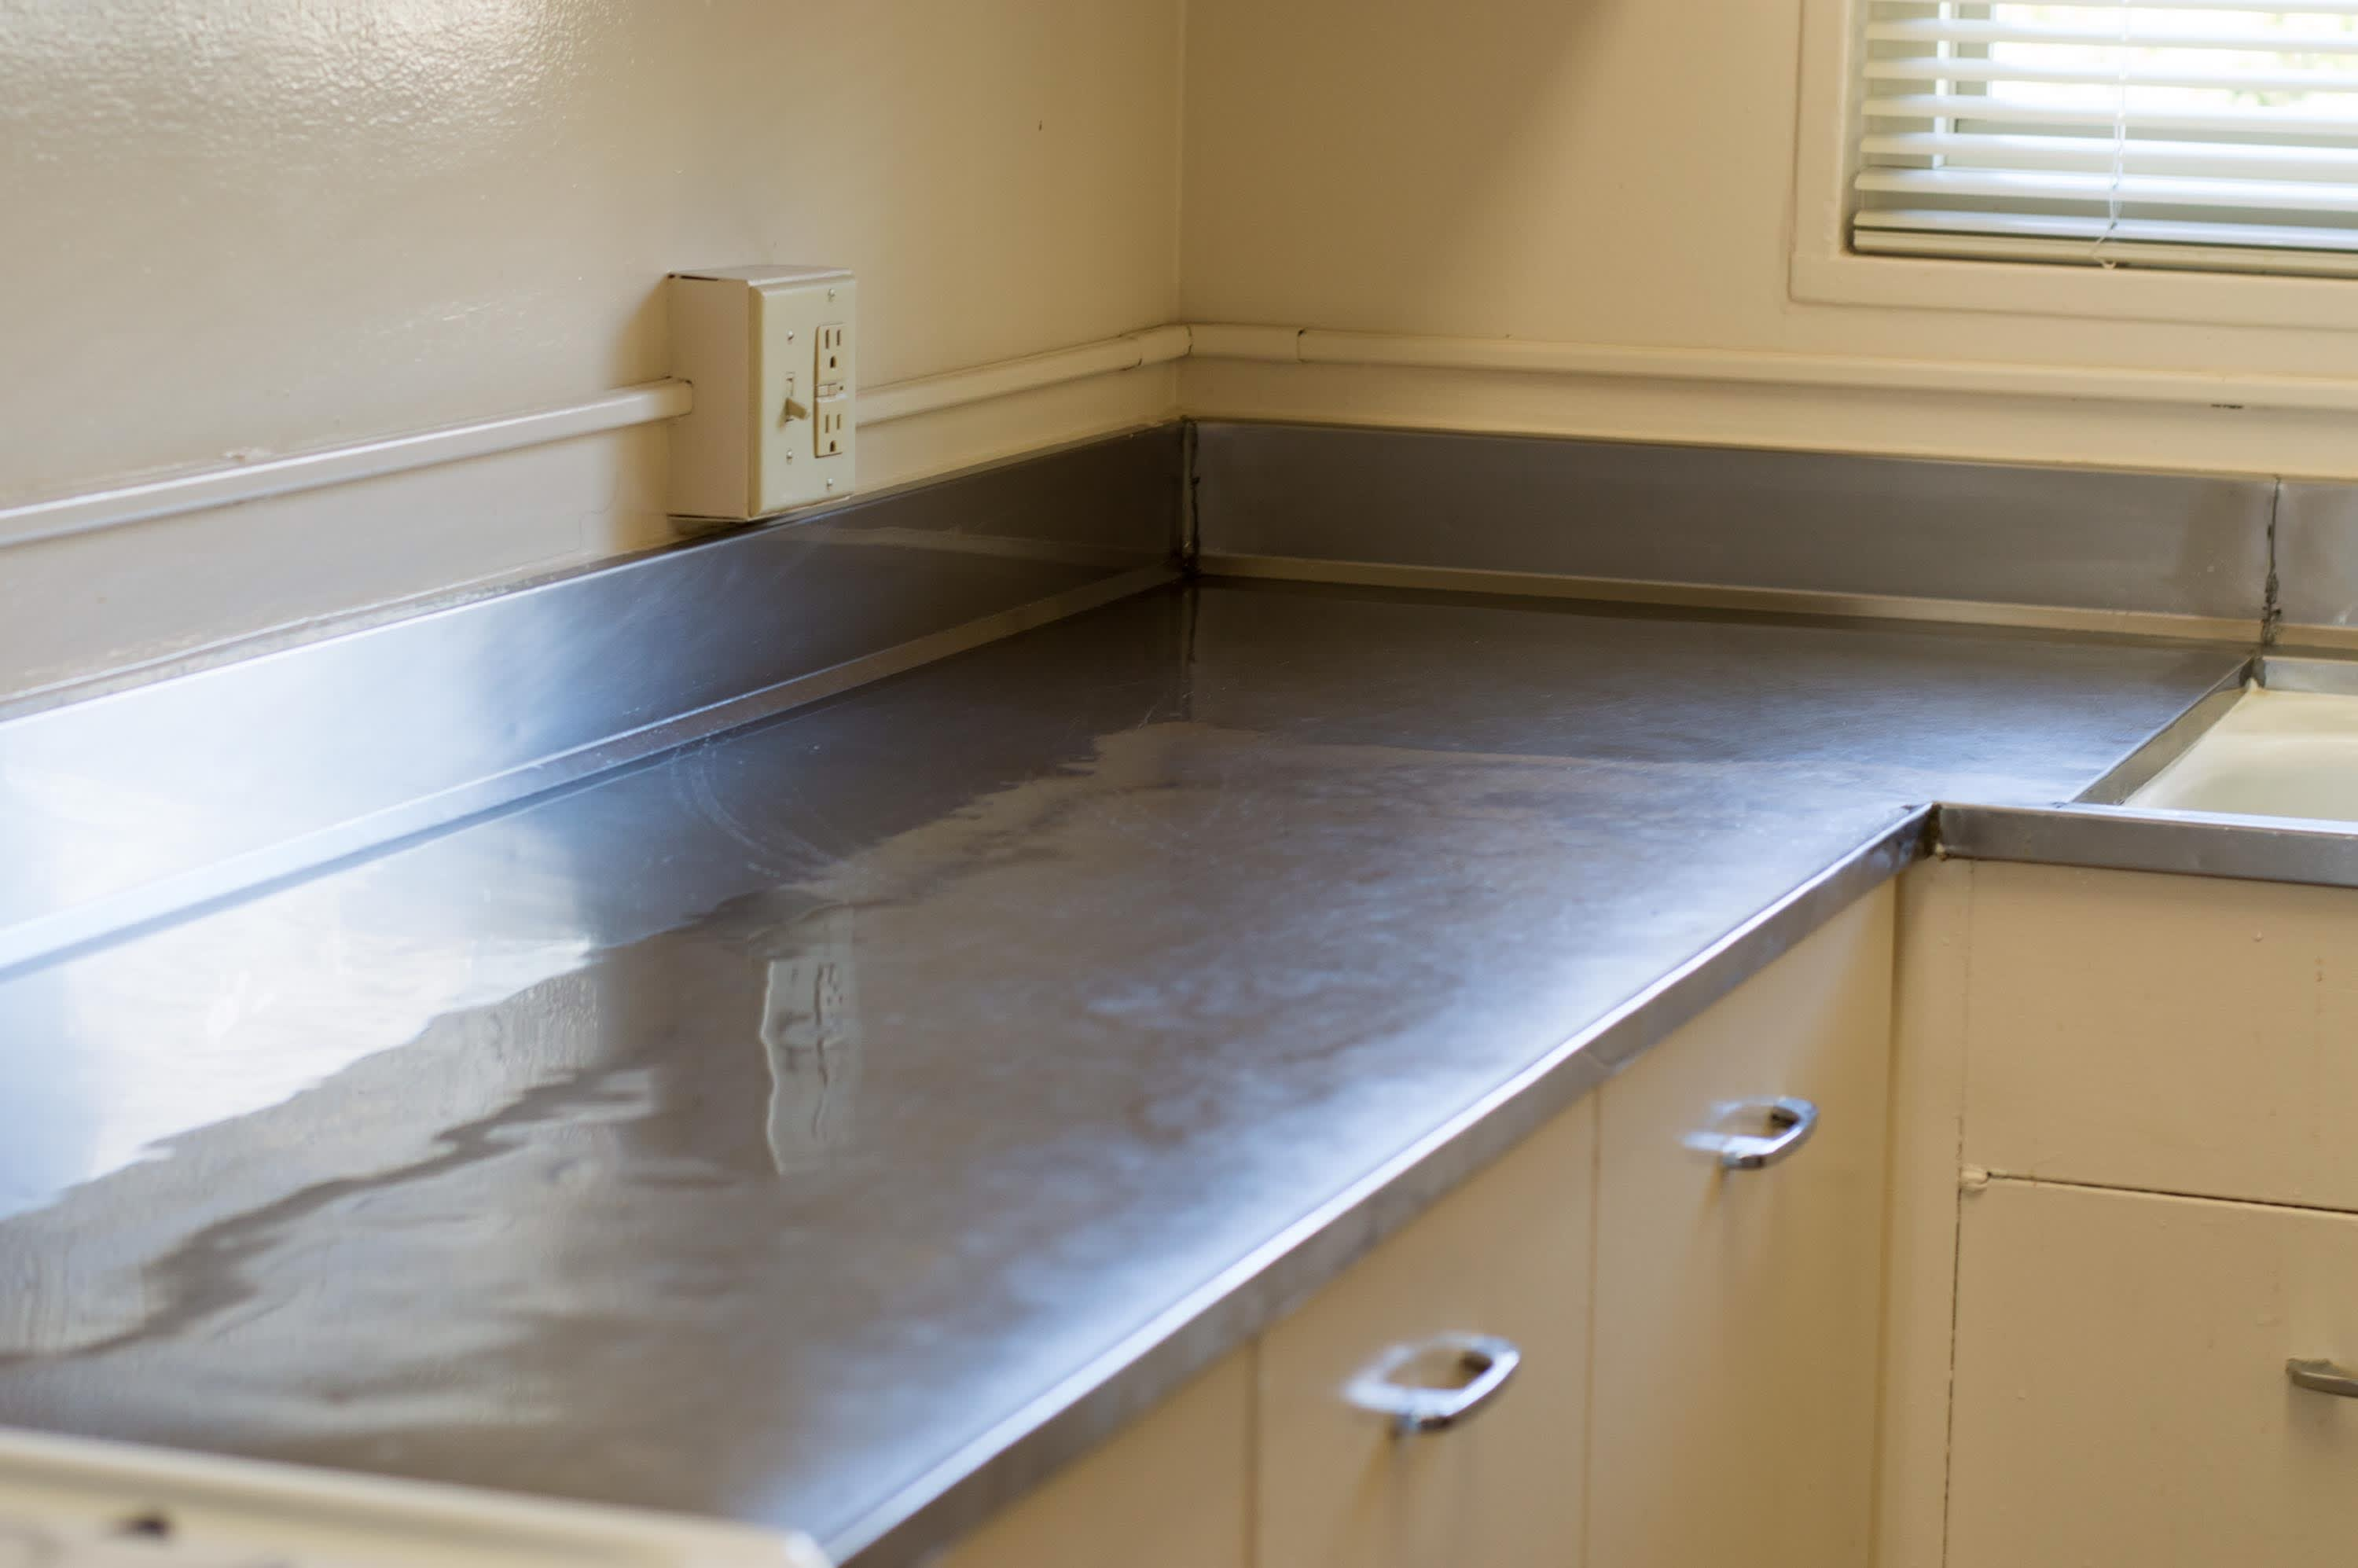 How To Clean Stainless Steel Countertops To A Shiny Streak Free Finish Kitchn